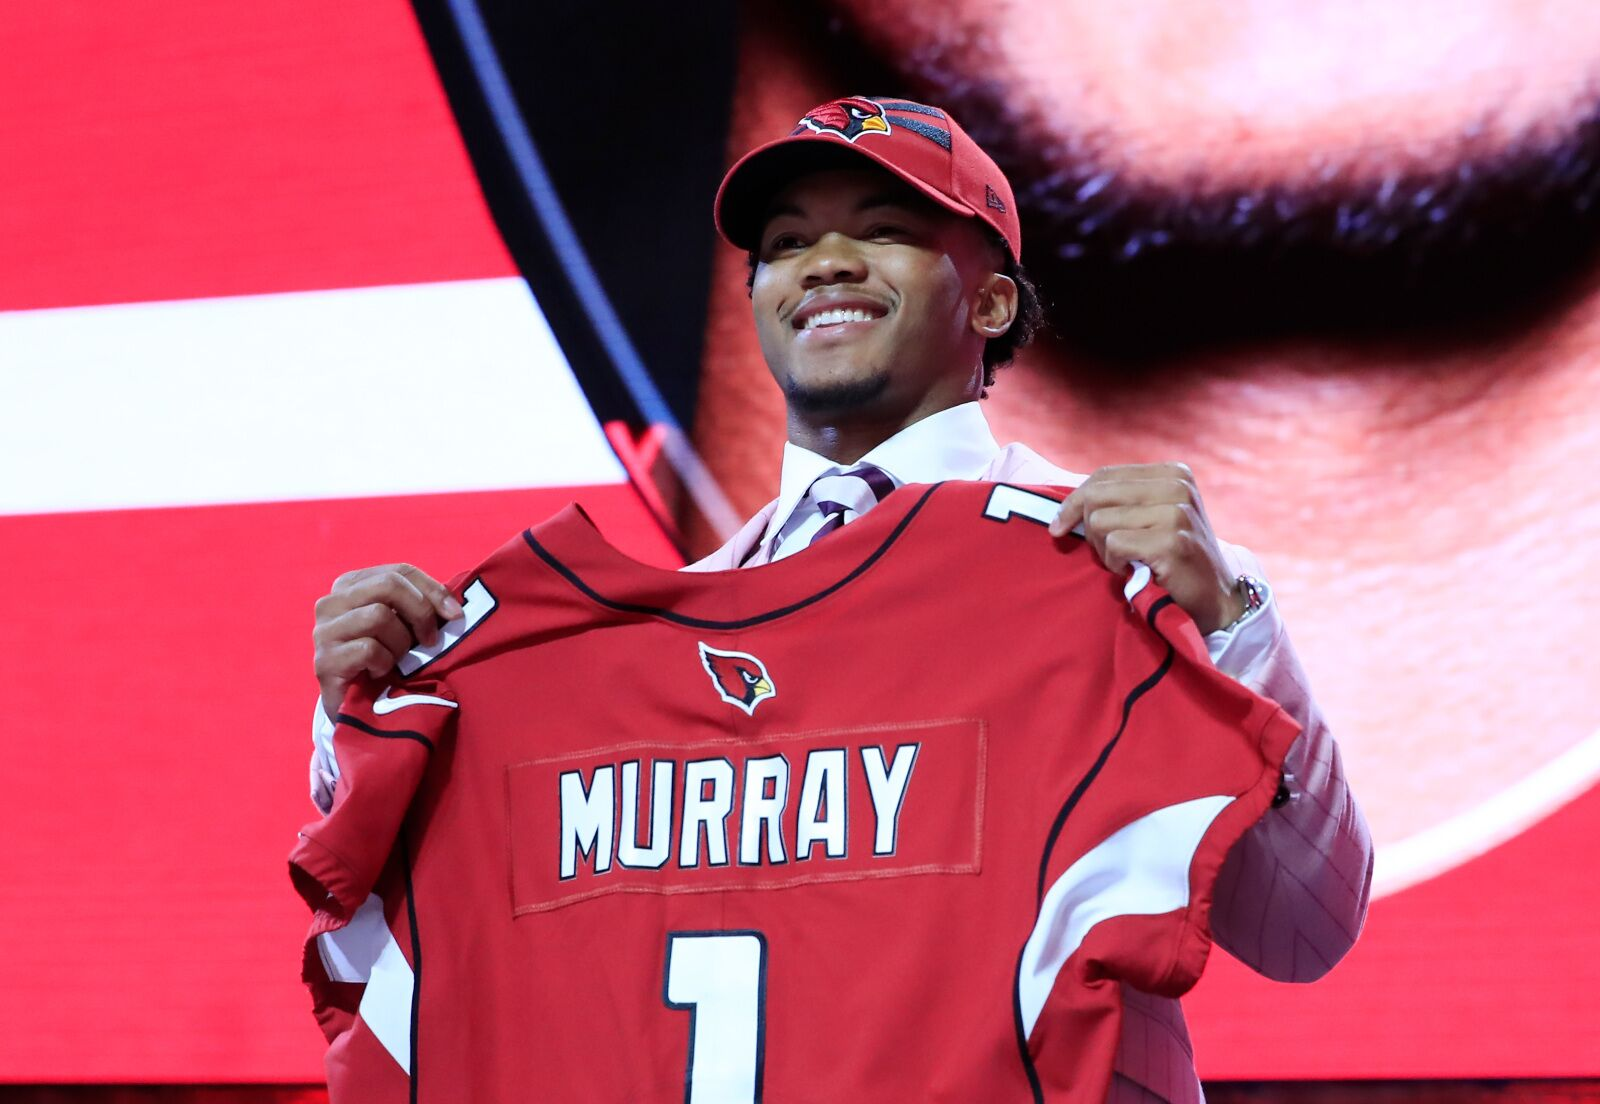 Kyler Murray can take the Arizona Cardinals to new heights